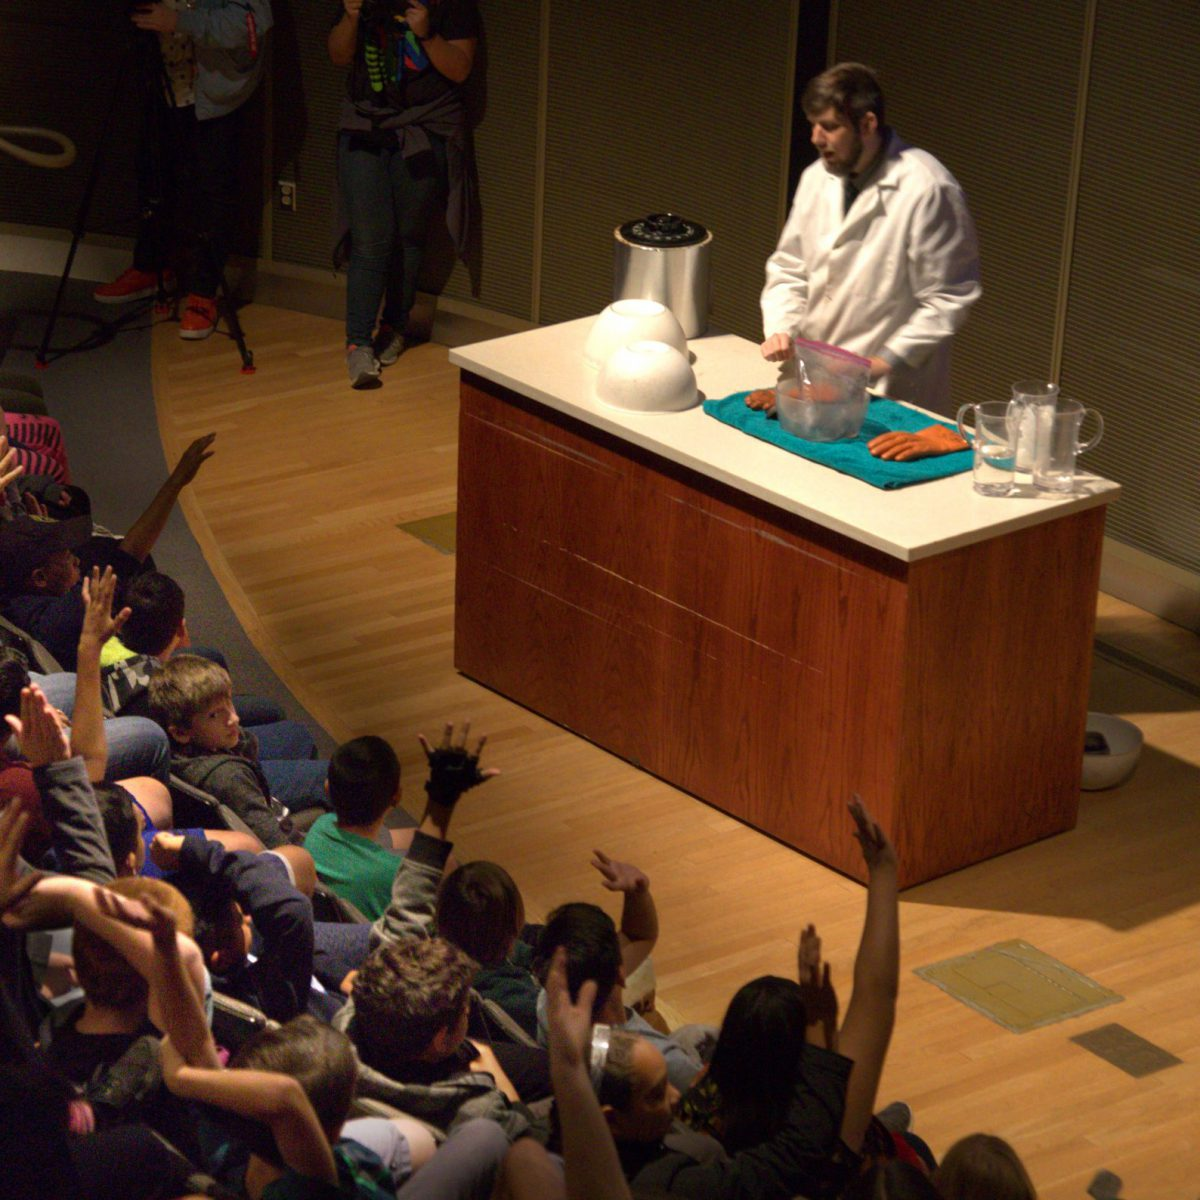 A crowd watches a live science demonstration at the Griffith Observatory.